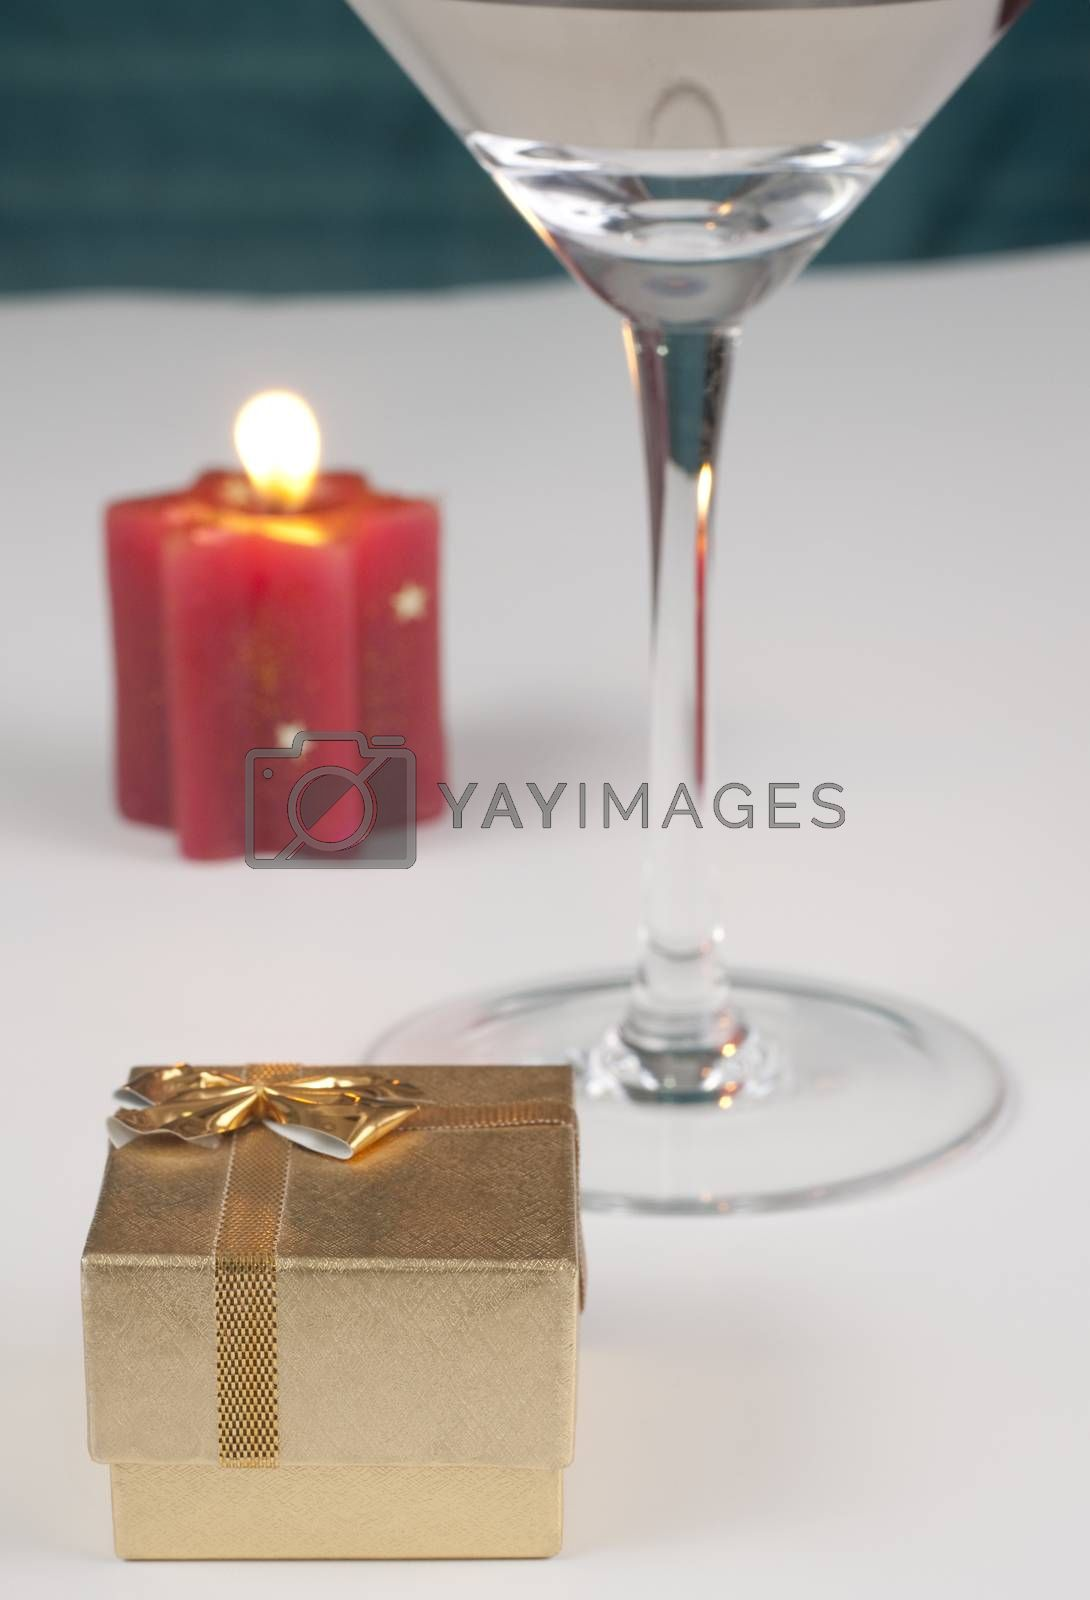 romantic proposal theme with a golden ring box a shampain glass and a red candle with flame